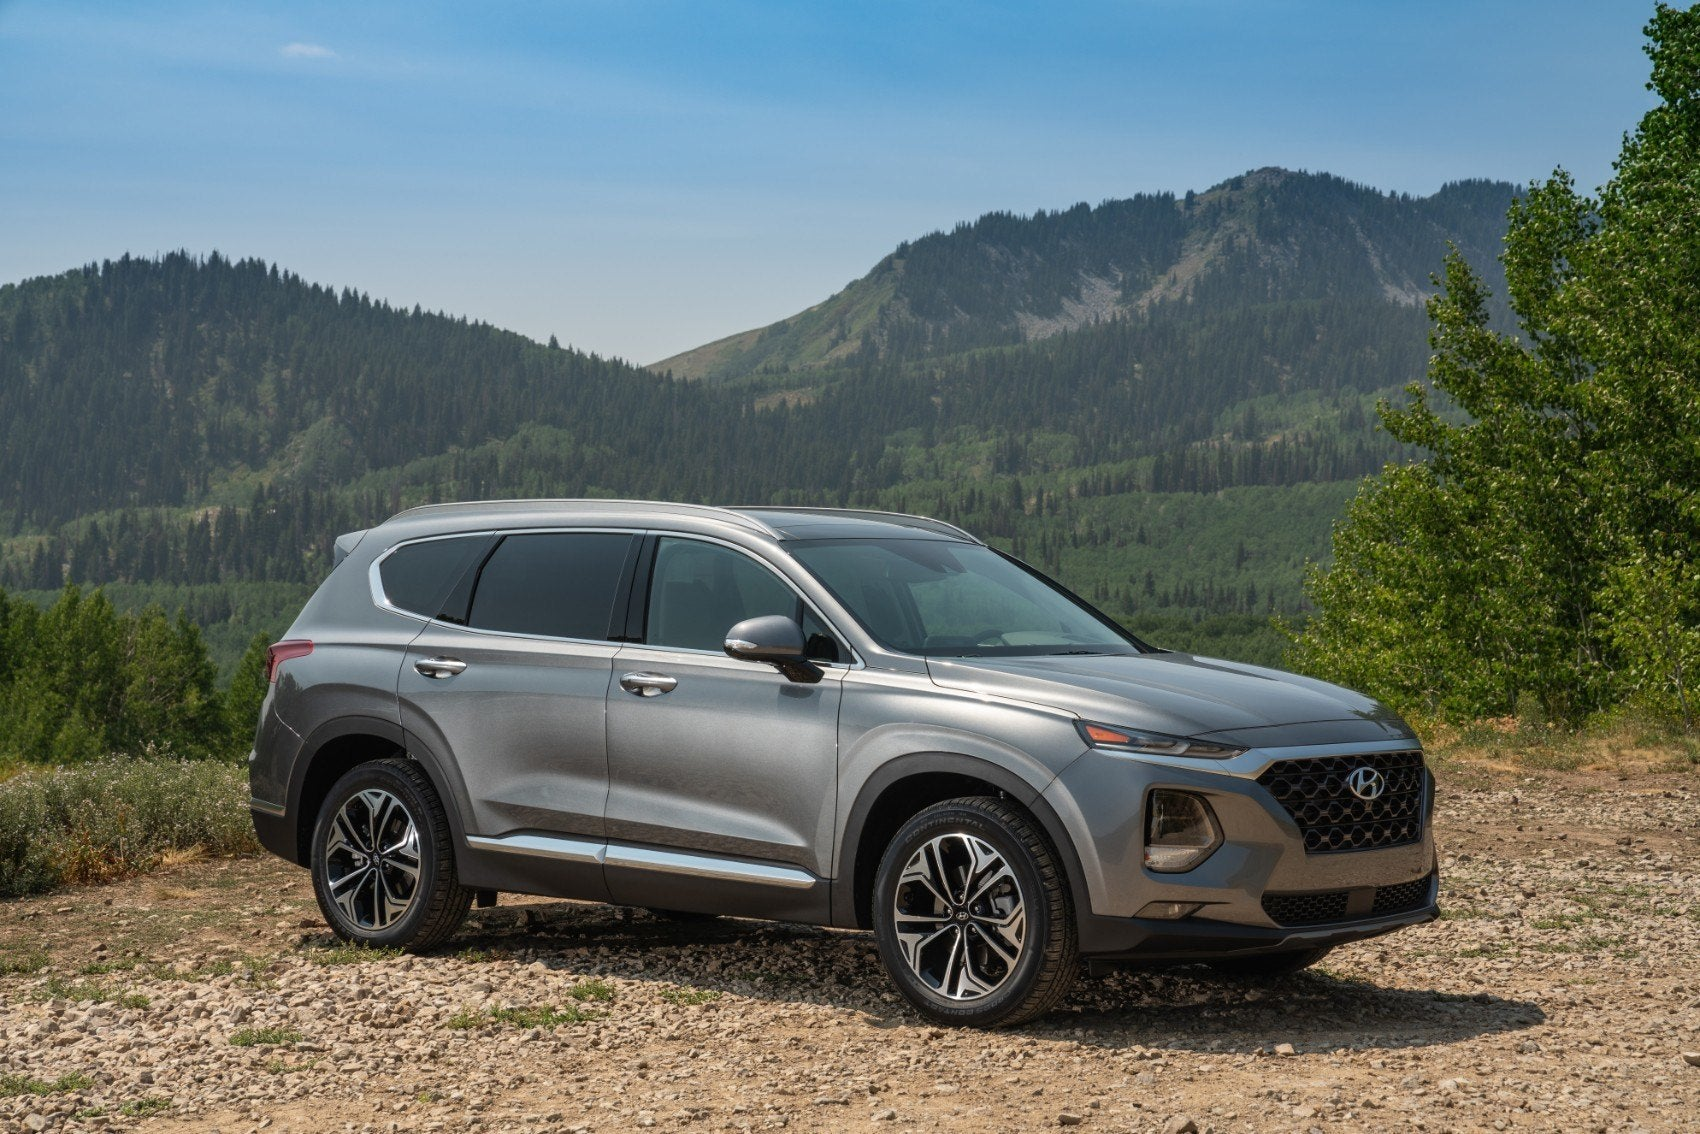 What Is A Crossover Suv >> 2019 Hyundai Santa Fe Ultimate Review: A Good Everyday SUV